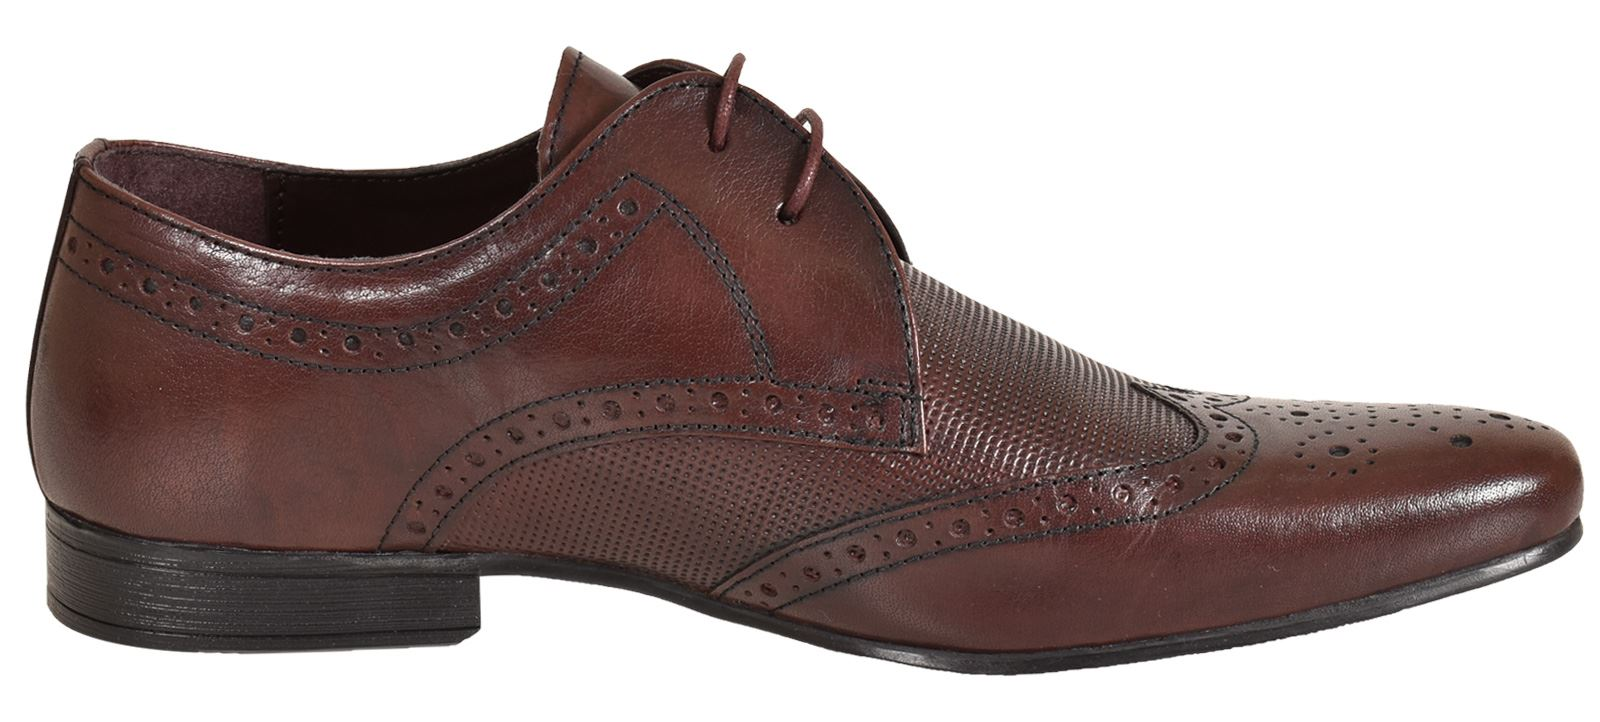 Mens-UK-Style-Leather-Lining-Formal-Office-Wedding-Smart-Work-Brogue-Shoes thumbnail 122